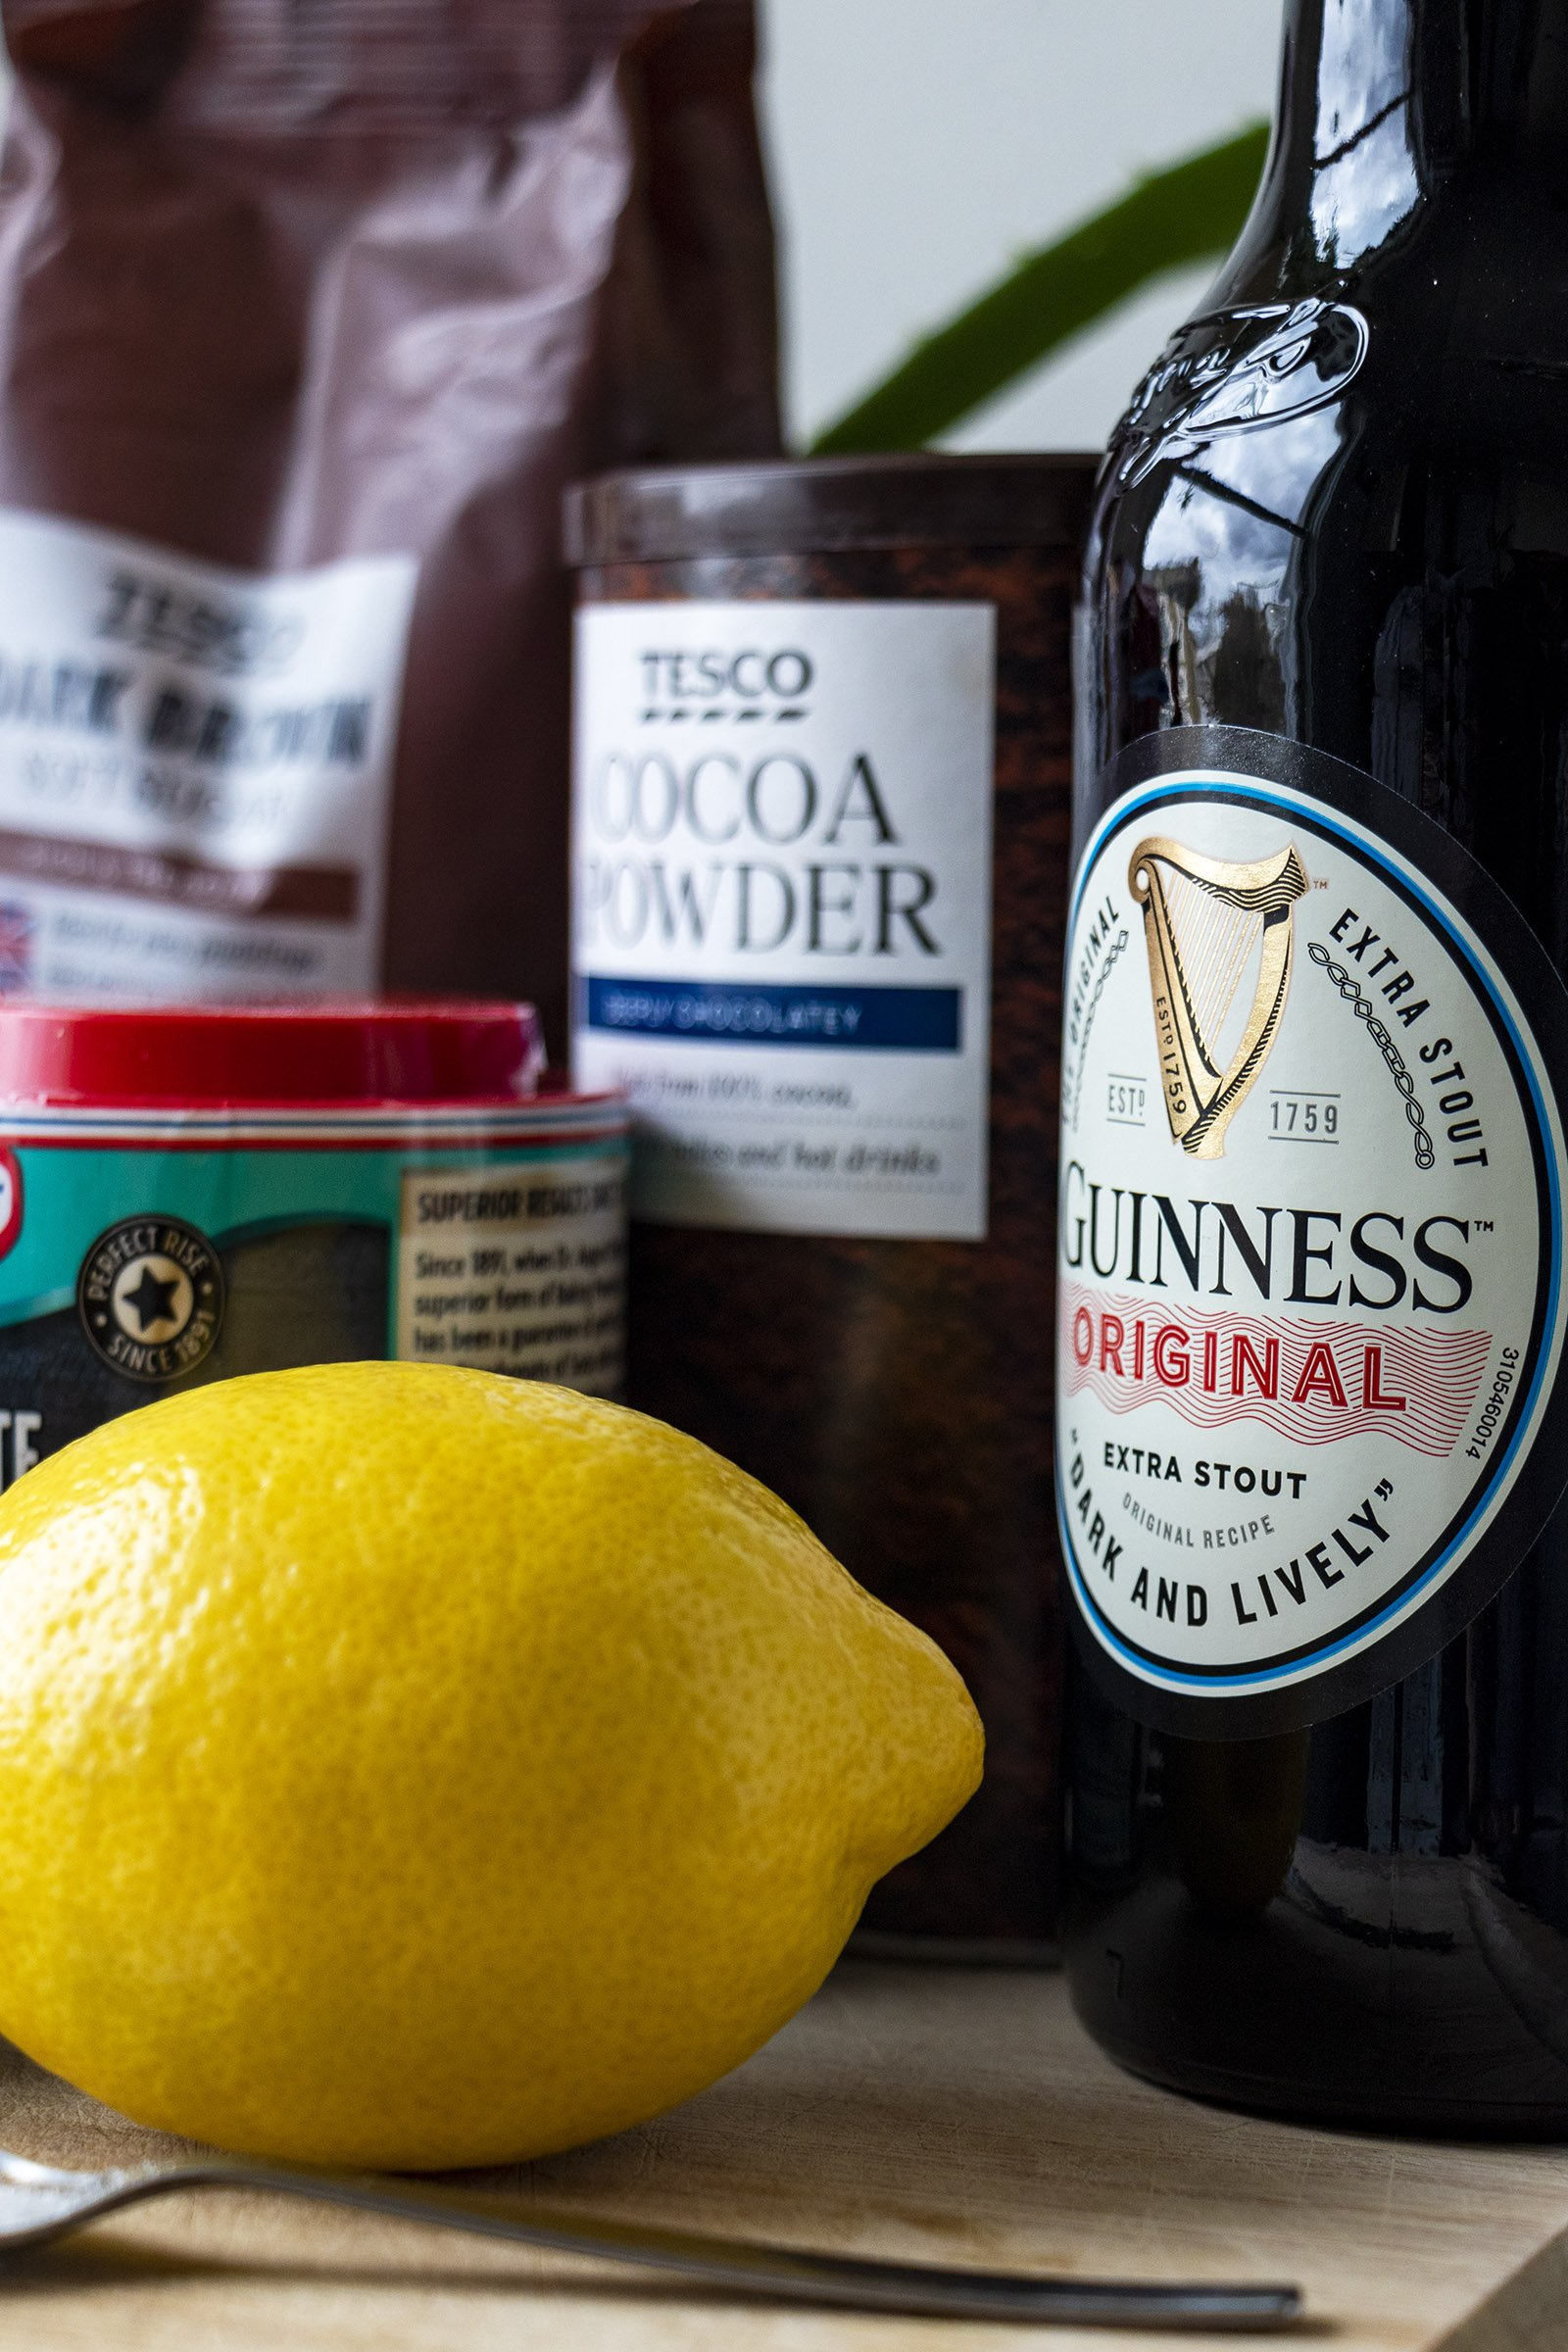 Chocolate Guinness cake ingredients, Guinness bottle